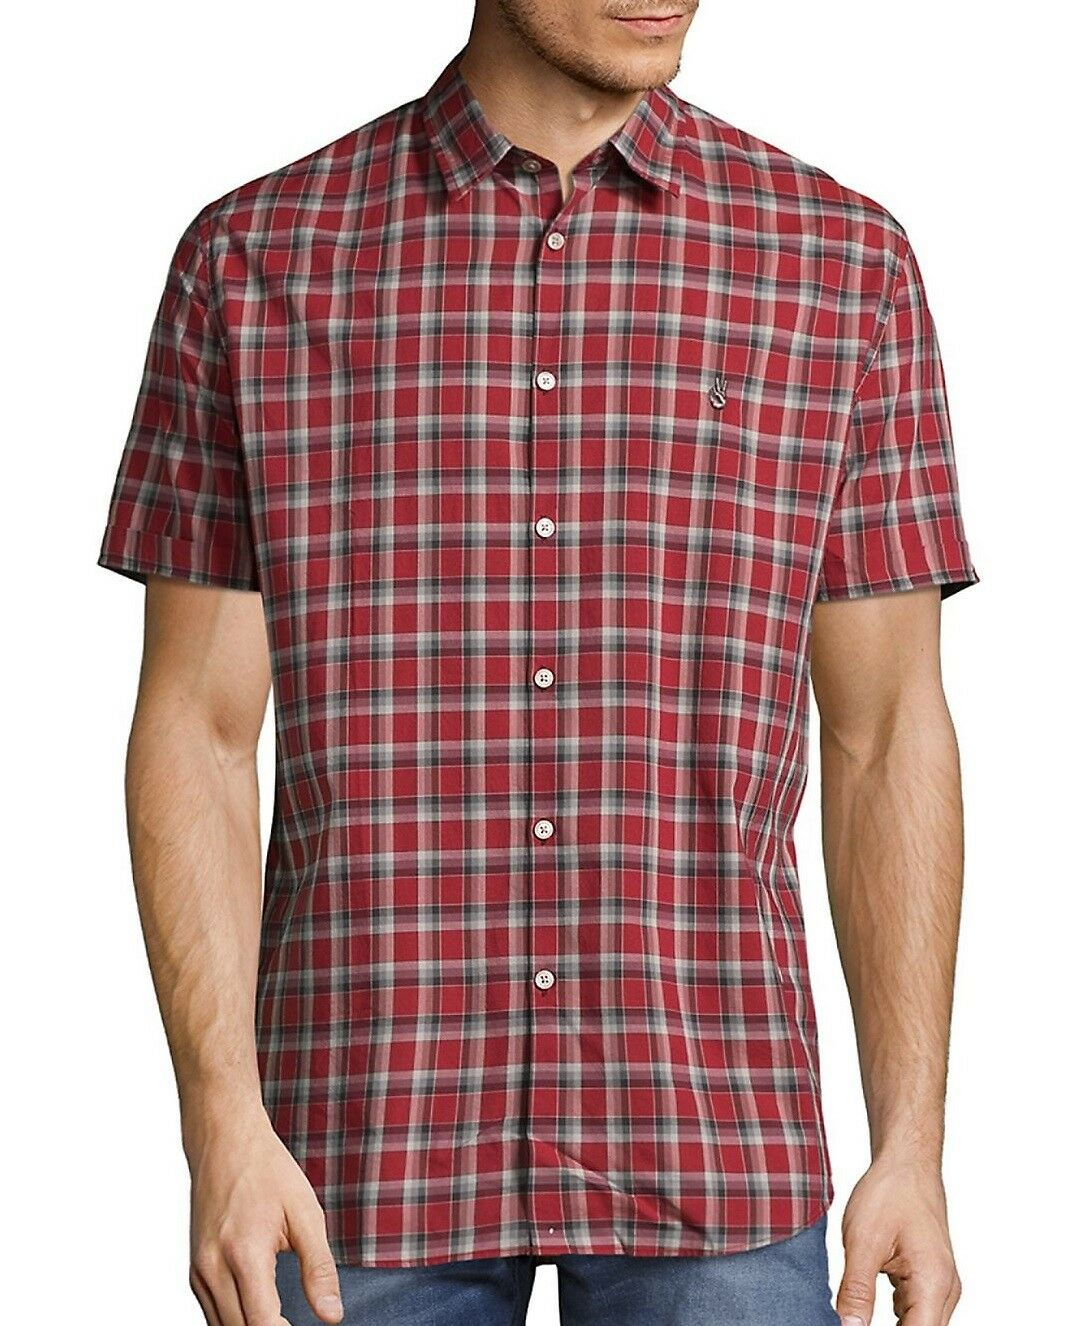 John Varvatos Star USA Men's Short Sleeve Peace Sign Plaid Shirt Red Clay XL